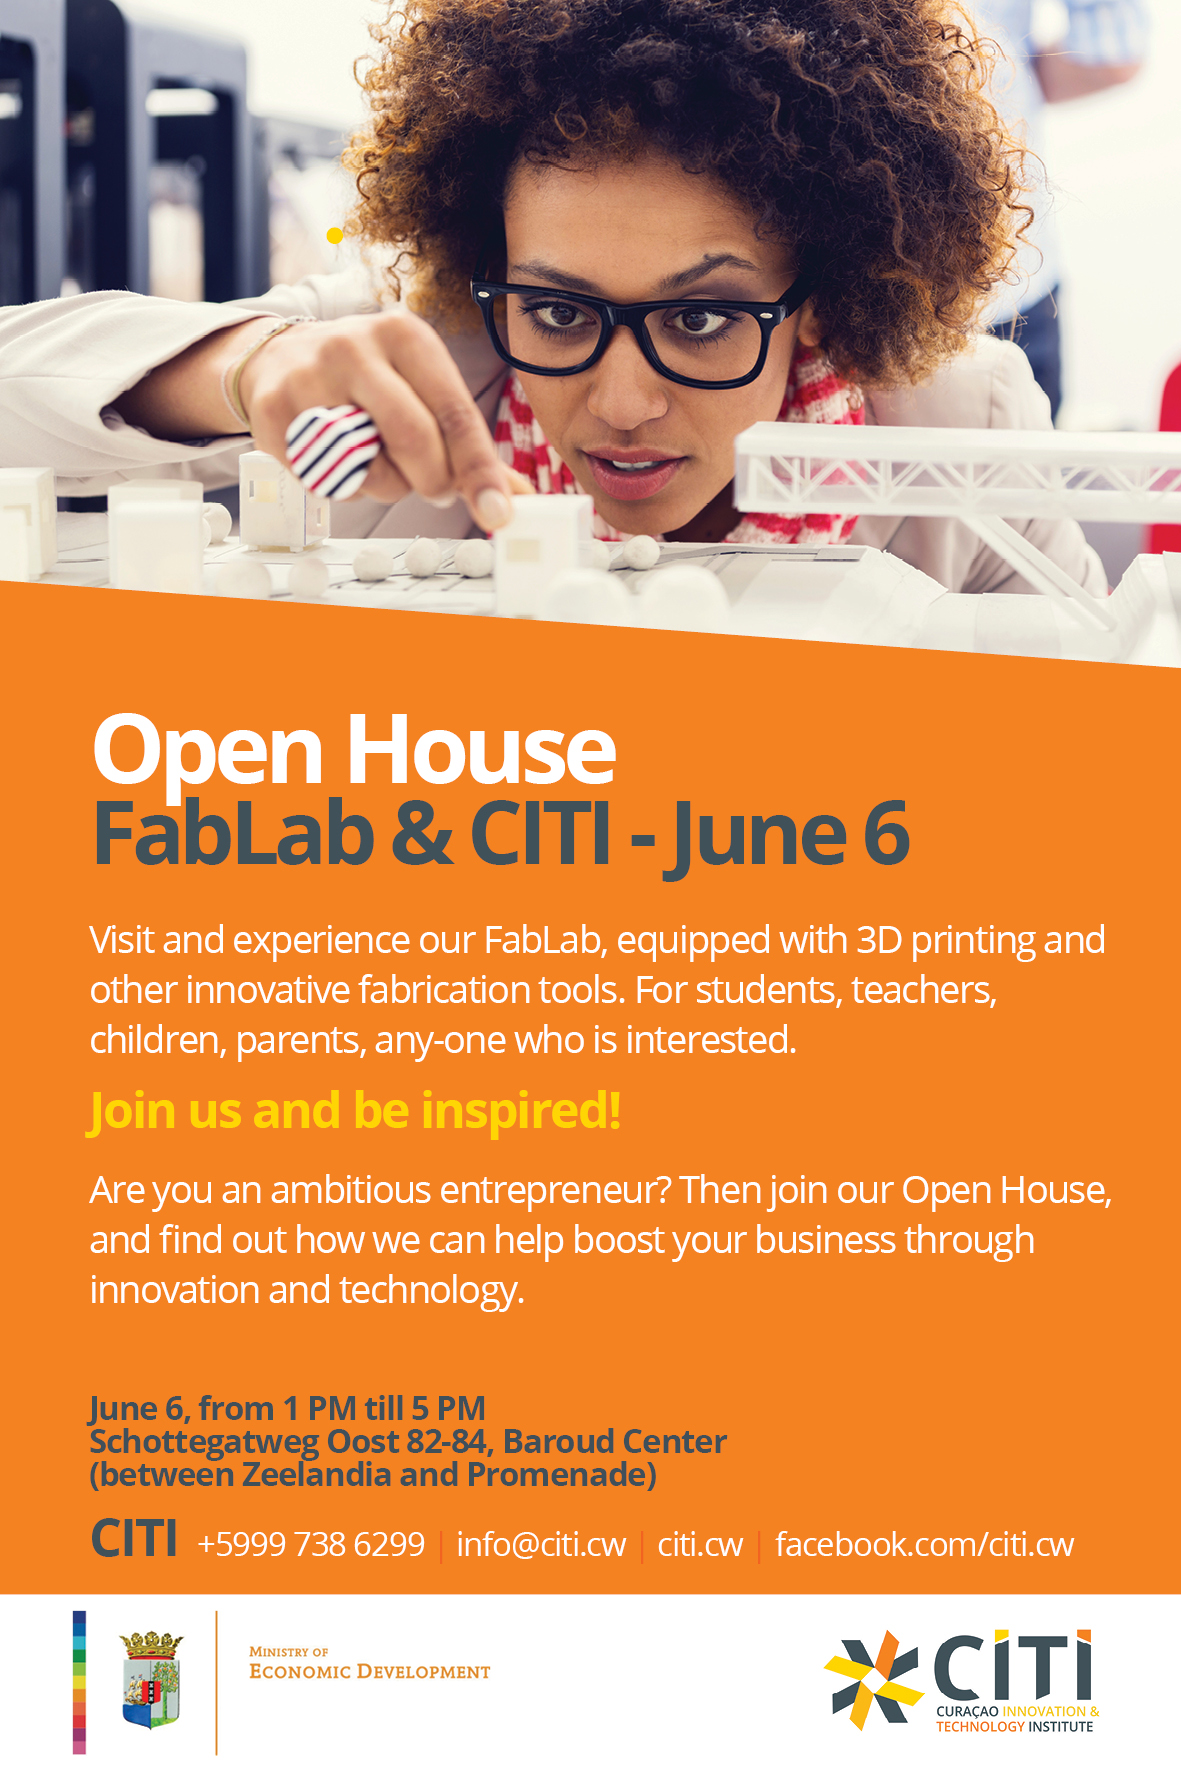 INVITE OPEN HOUSE CITI - June 6 [1]